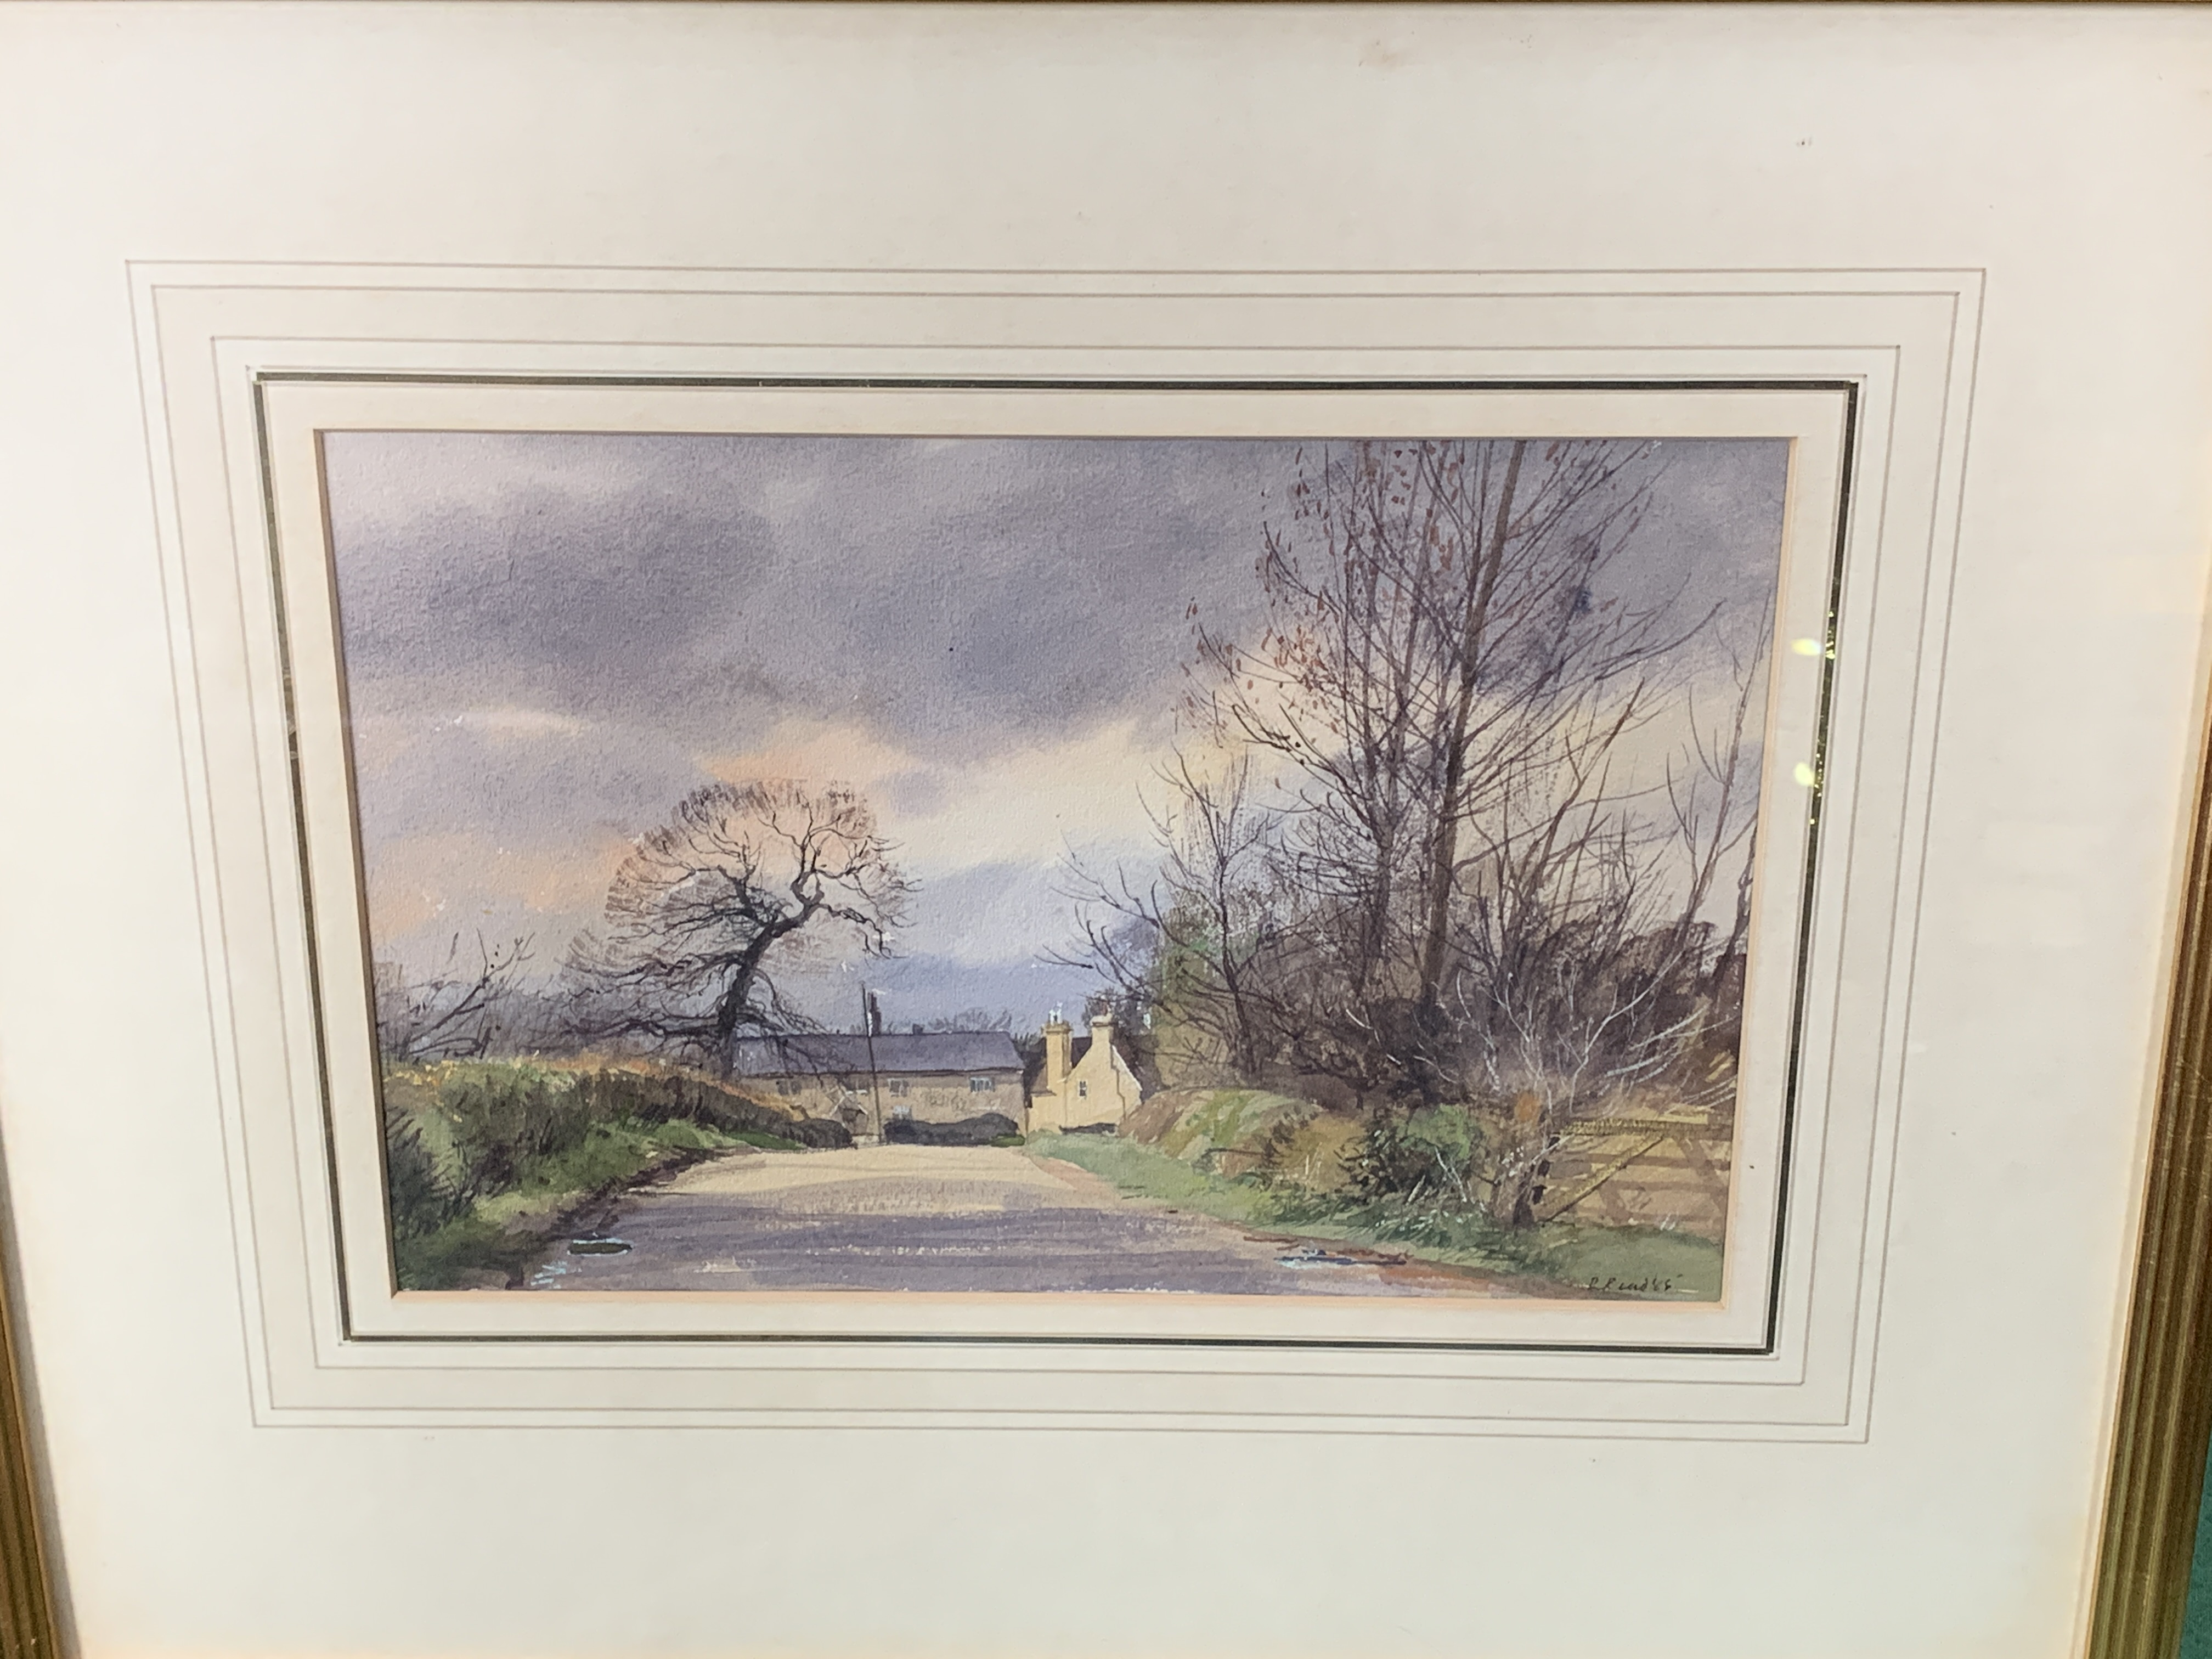 Framed and glazed watercolour, signed and dated R. Read '85 - Image 2 of 3